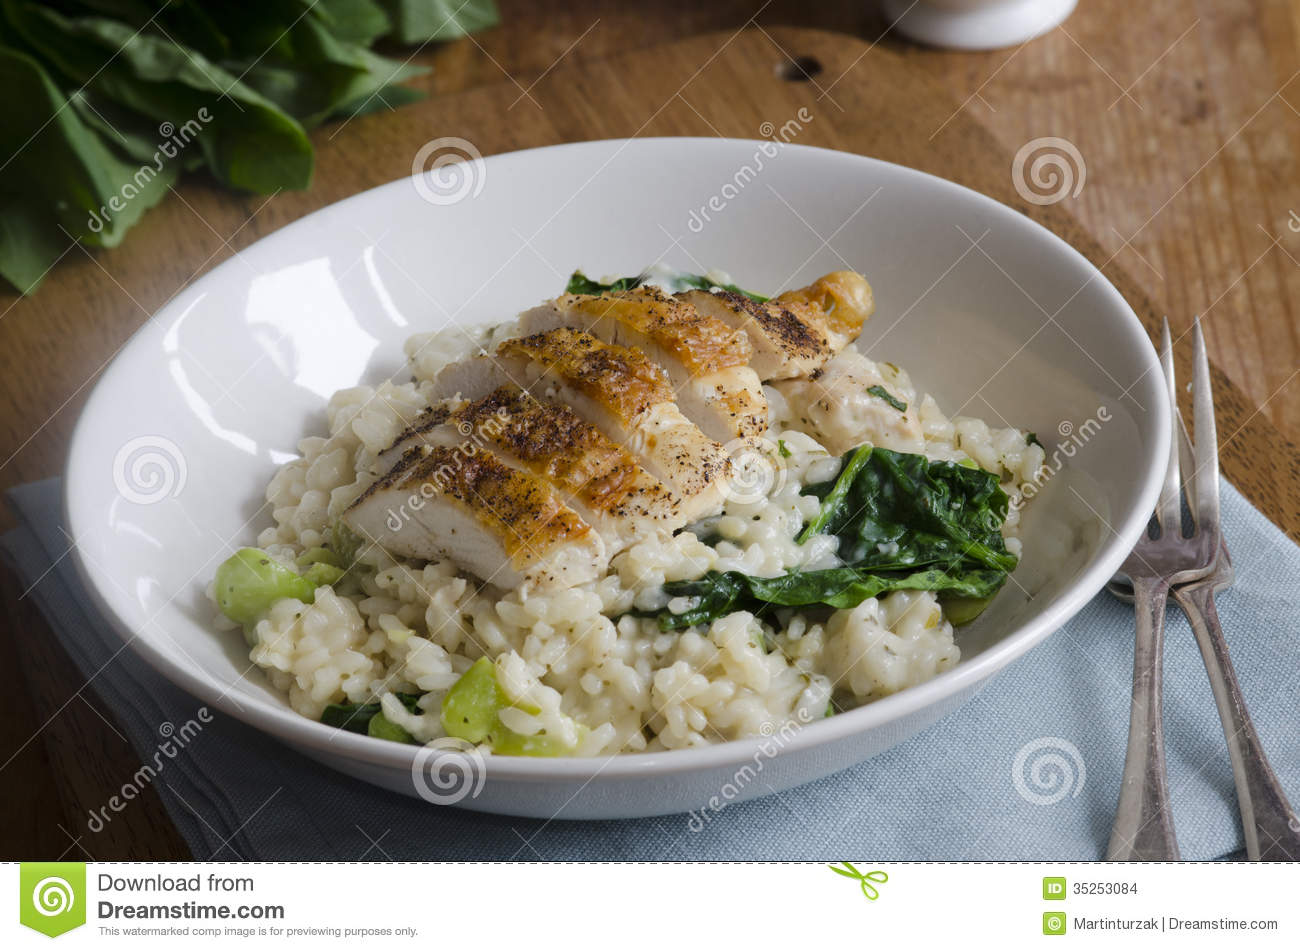 Risotto con spinaci e pollo